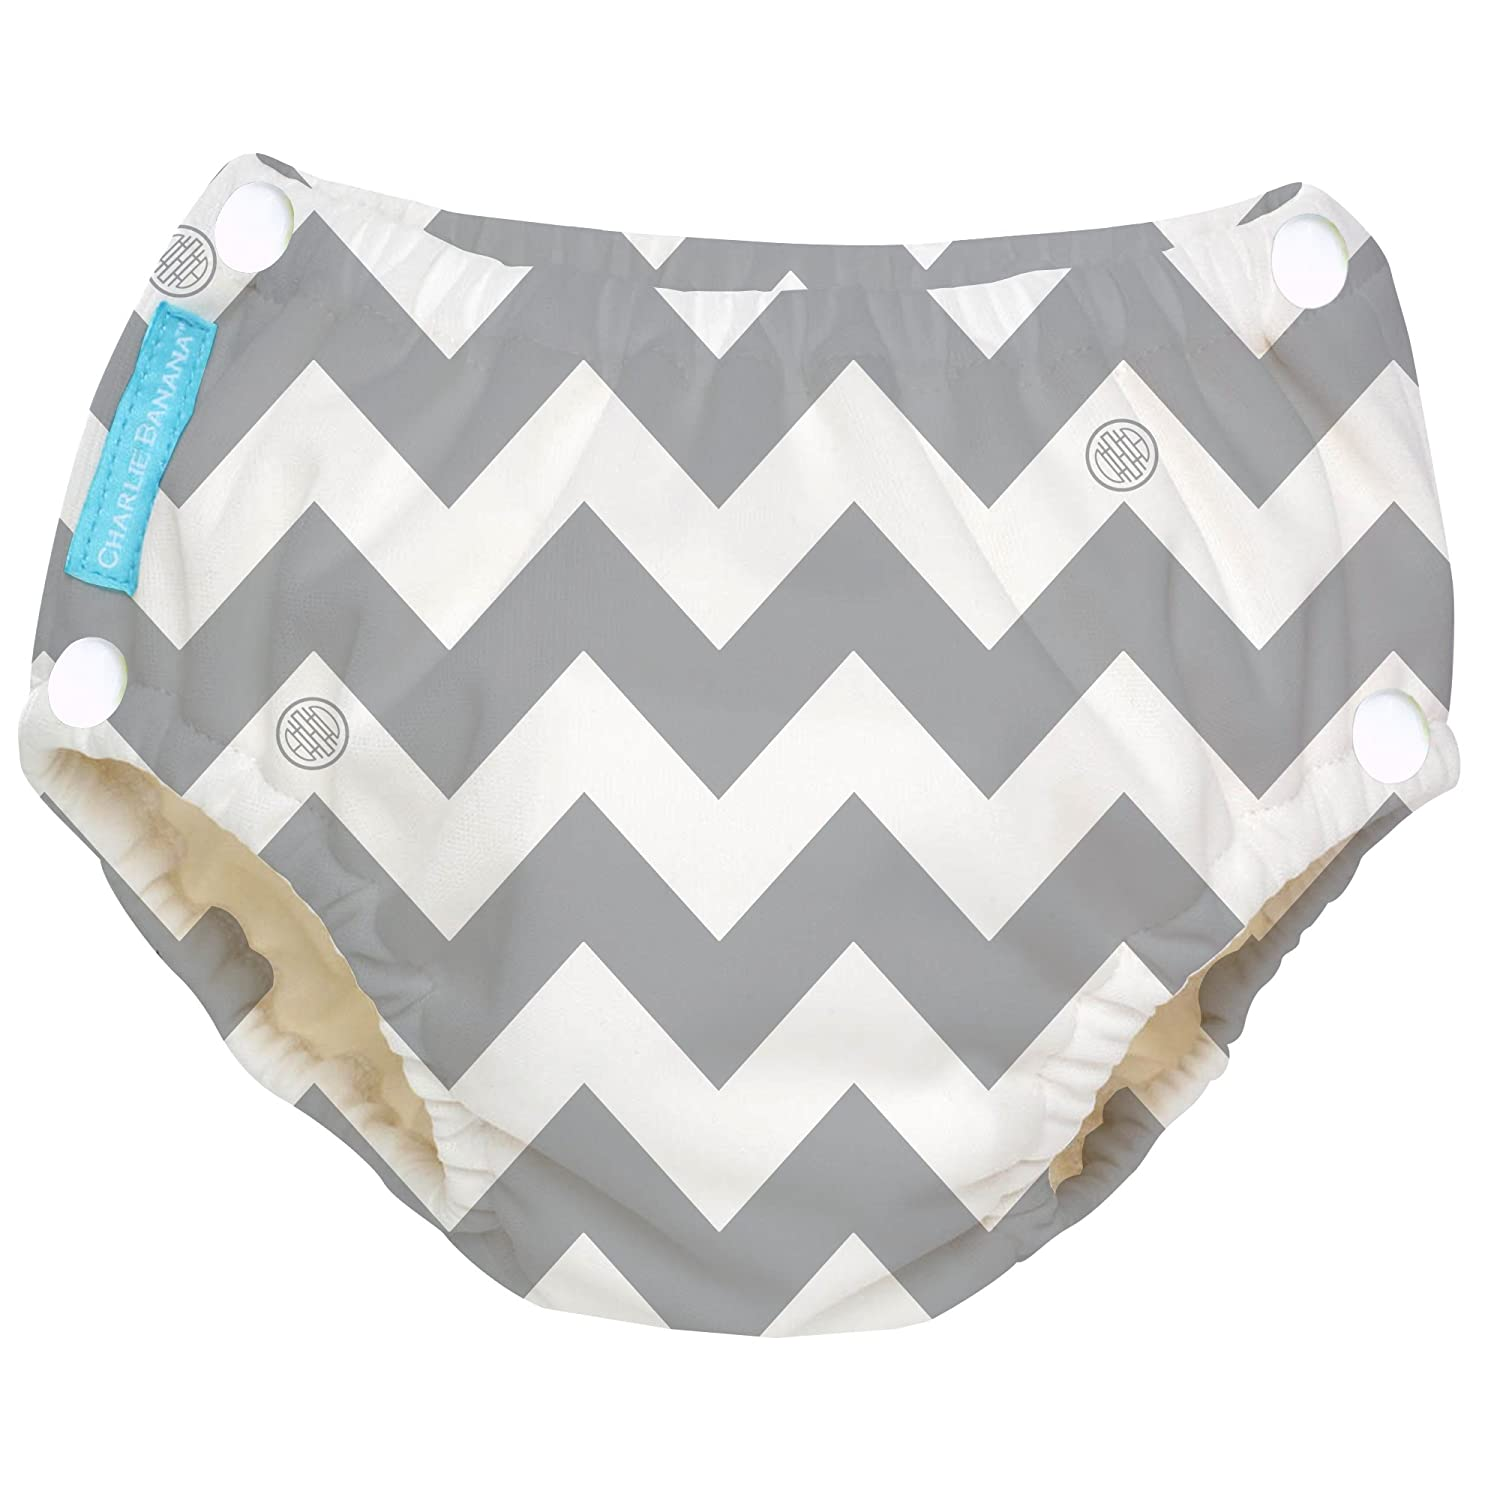 Charlie Banana Reusable Easy Snaps Swim Diaper, Grey Chevron, Large 8870199